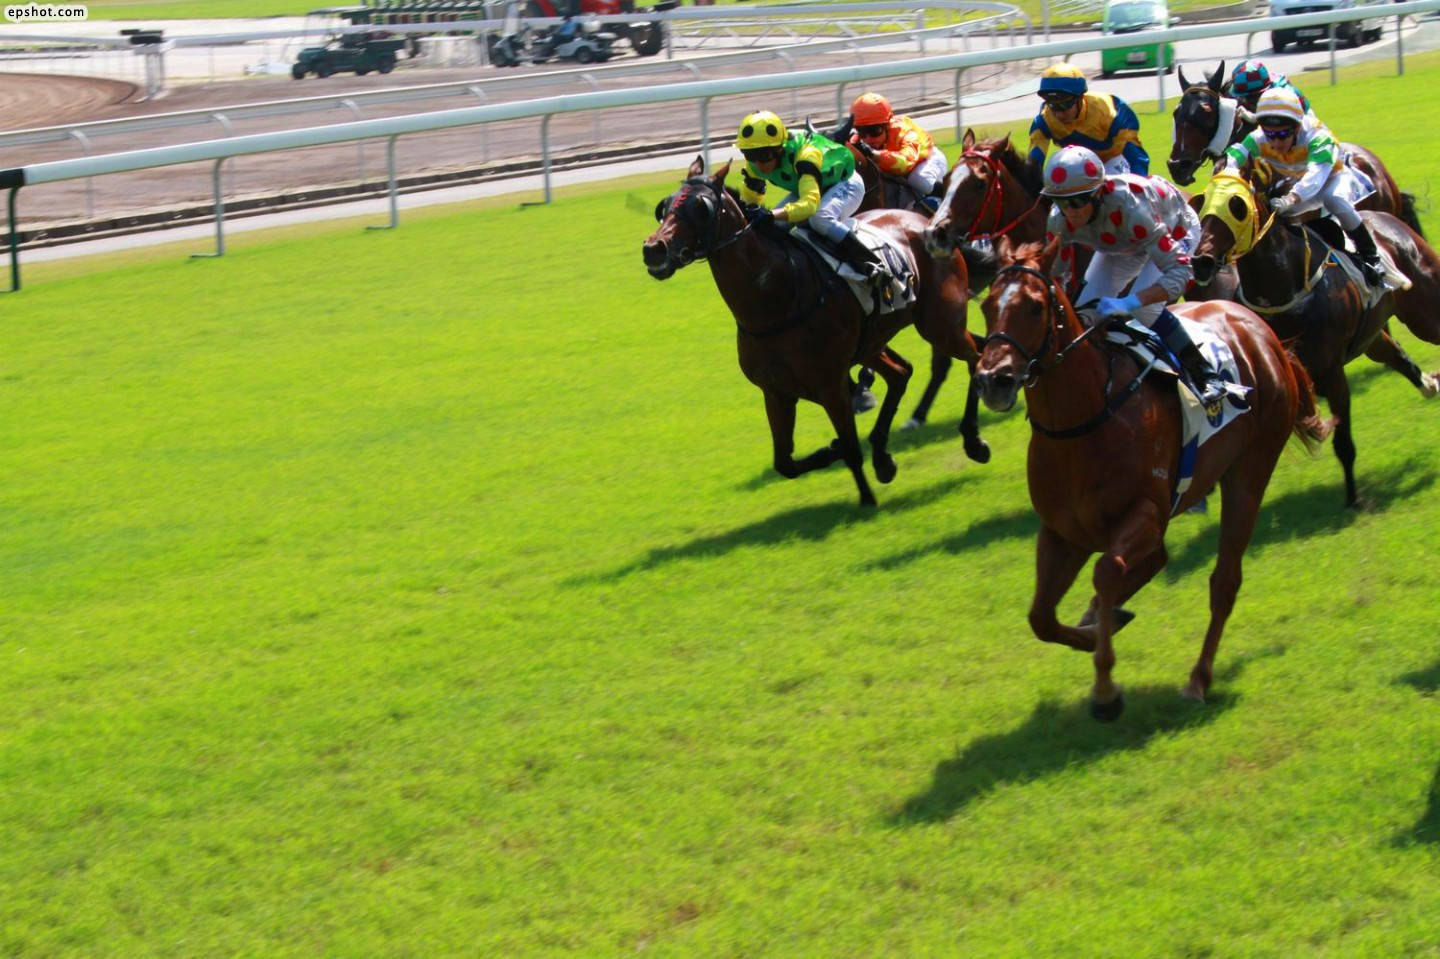 Hong Kong Come Horseracing Tour for normal days